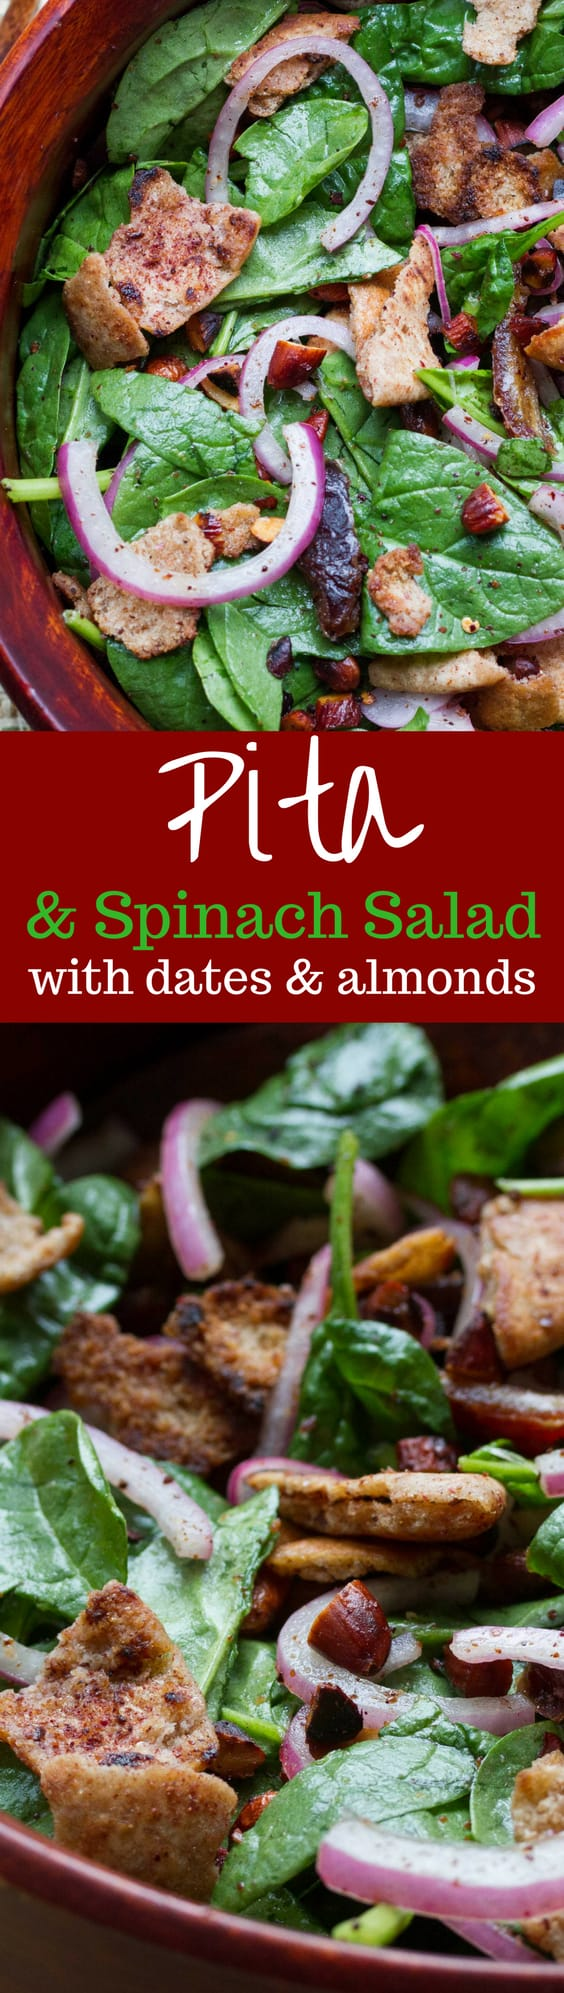 Pita Spinach Salad with Dates and Almonds - one of the best salads ever with a light olive oil dressing and vinegar soaked onions. A must try! www.savingdessert.com